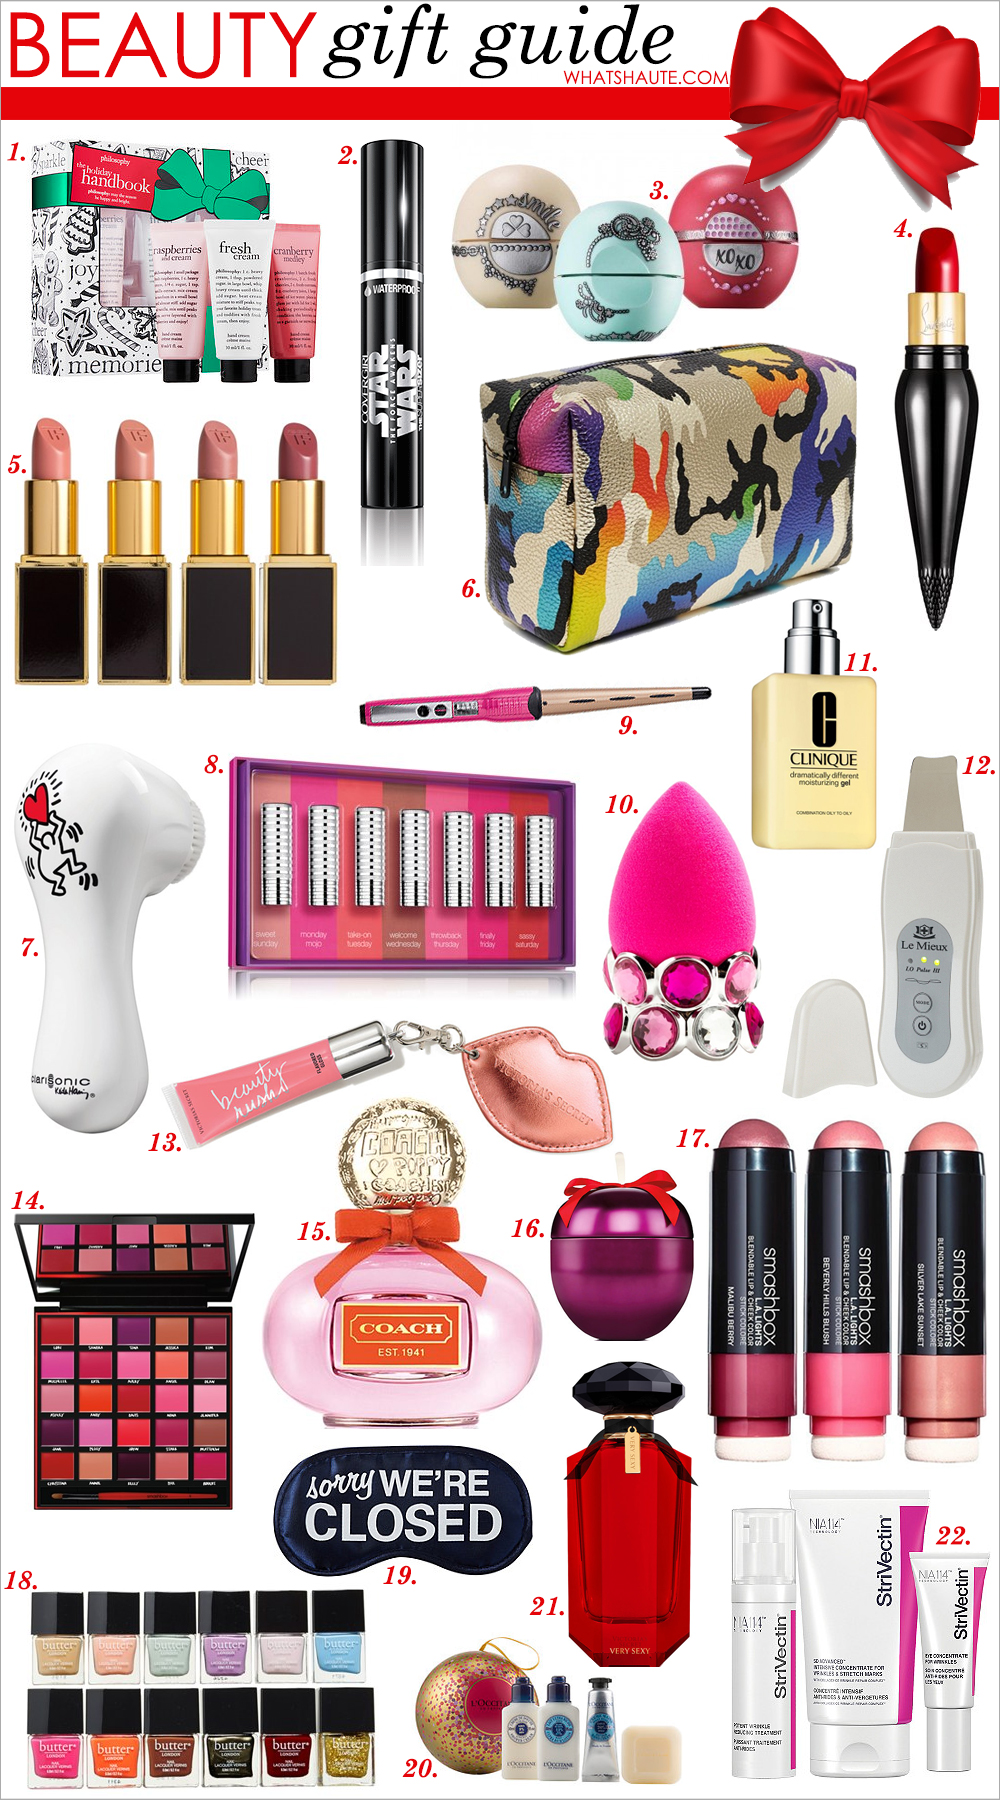 What's Haute Holiday 2015 Beauty Gift Guide: philosophy The Holiday Handbook Set, CoverGirl Star Wars Dark Side Limited Edition The Super Sizer Mascara, Very Black 800 / Light Side Limited Edition The Super Sizer Waterproof Mascara, Very Black 825, eos Holiday Lip Balm, Christian Louboutin Rouge Louboutin Silky Satin Lip Colour, Tom Ford Lip Color Set (Nordstrom Exclusive), ASOS Oversized Metallic Camo Makeup Bag, CLARISONIC 'Mia 2 - Keith Haring Love' Sonic Skin Cleansing System (Limited Edition) ($196 Value), Clinique 'Days of the Week' Matte Lipstick Set (Limited Edition) ($67 Value), Conair You Curl Styling Wand, beautyblender® 'bling.ring' Drying Stand & Makeup Sponge Applicator ($39 Value), Clinique 'Dramatically Different' Moisturizing Gel (6.7 oz.) (Special Purchase), Le Mieux 4-in-1 Ultrasonic Anti-Aging Skin Perfecter, Victoria's Secret NEW! Flavored Gloss Keychain, Smashbox '25th Anniversary' Lip Palette (Limited Edition), Coach Poppy Women's Perfume, 1.7 oz, The Body Shop Frosted Plum Feel Good Tin, Smashbox L.A. Lights Blendable Lip & Cheek Color, butter LONDON 'Twelve Months of Manis' Set (Limited Edition) ($120 Value), ULTA Sorry We're Closed Eye Mask, L'Occitane Shea Butter Festive Ornament, Very Sexy Eau de Parfum, StriVectin SD Power Trio